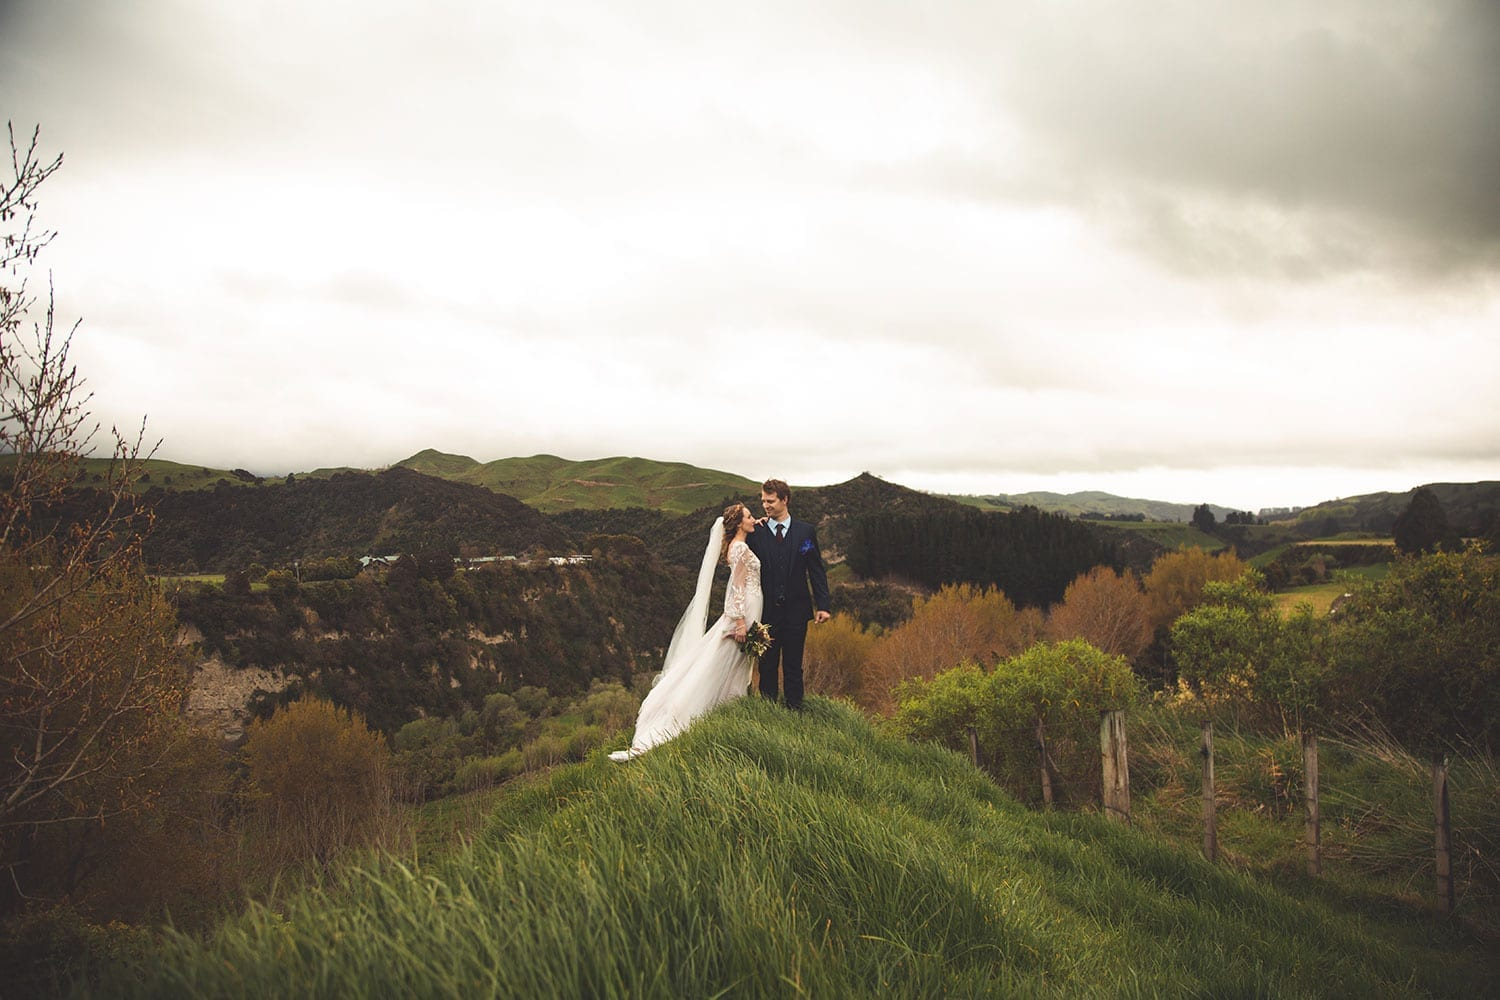 Vinka Design Features Real Weddings - bride in custom made gown, a combination of Isabelle and Ivy from our Heart of Havana collection. Bride and groom in a field with panoramic views